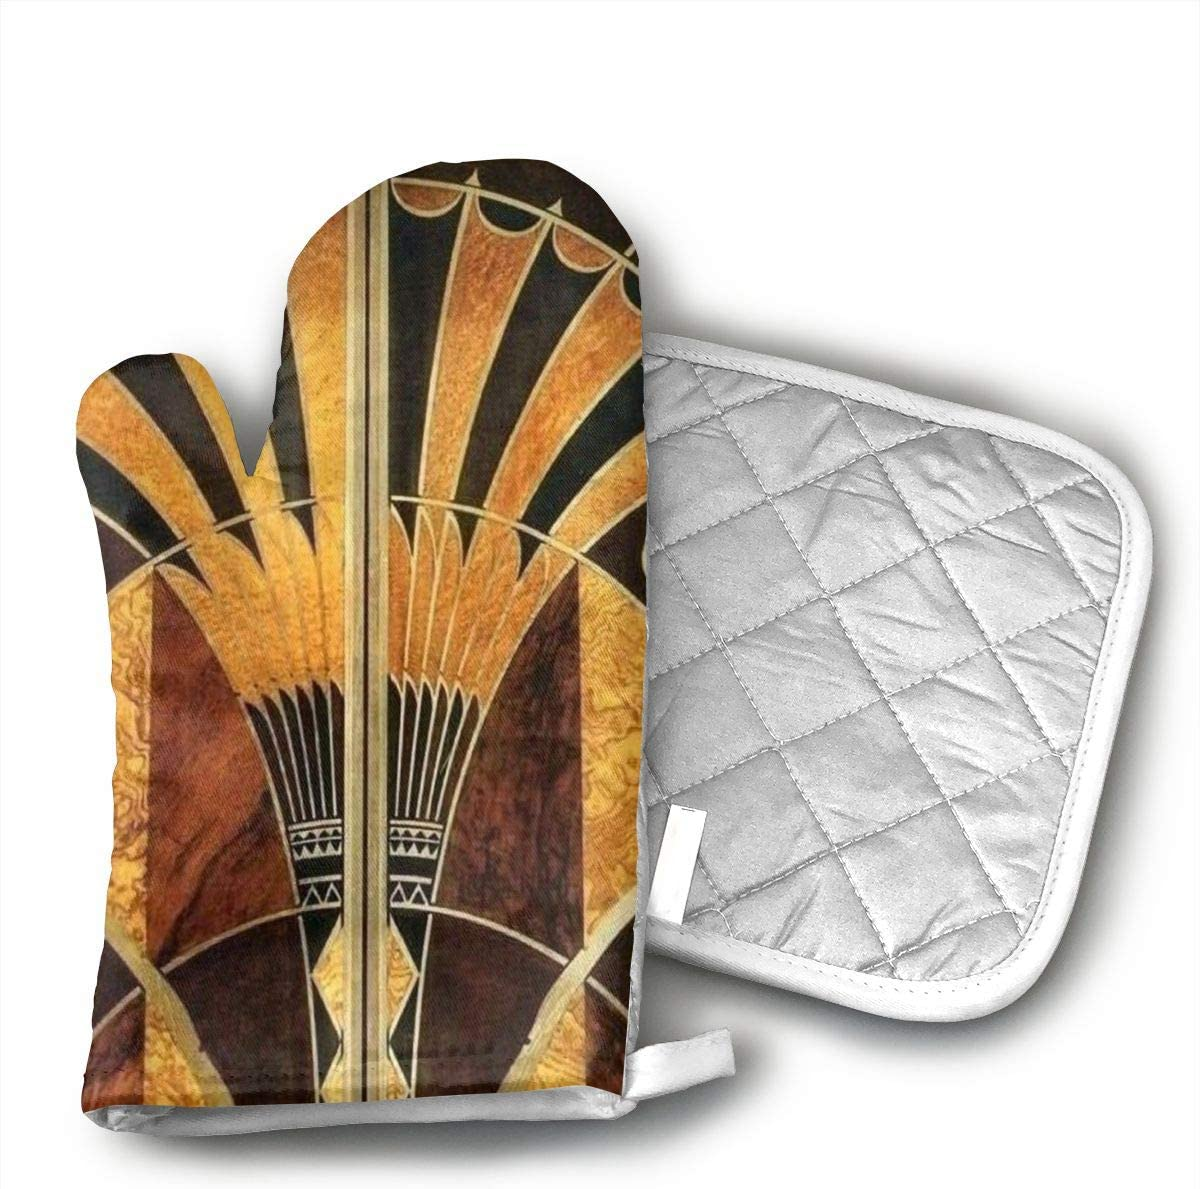 HGUIDHG Art Deco Oven Mitts+Insulated Square Mat,Heat Resistant Kitchen Gloves Soft Insulated Deep Pockets, Non-Slip Handles